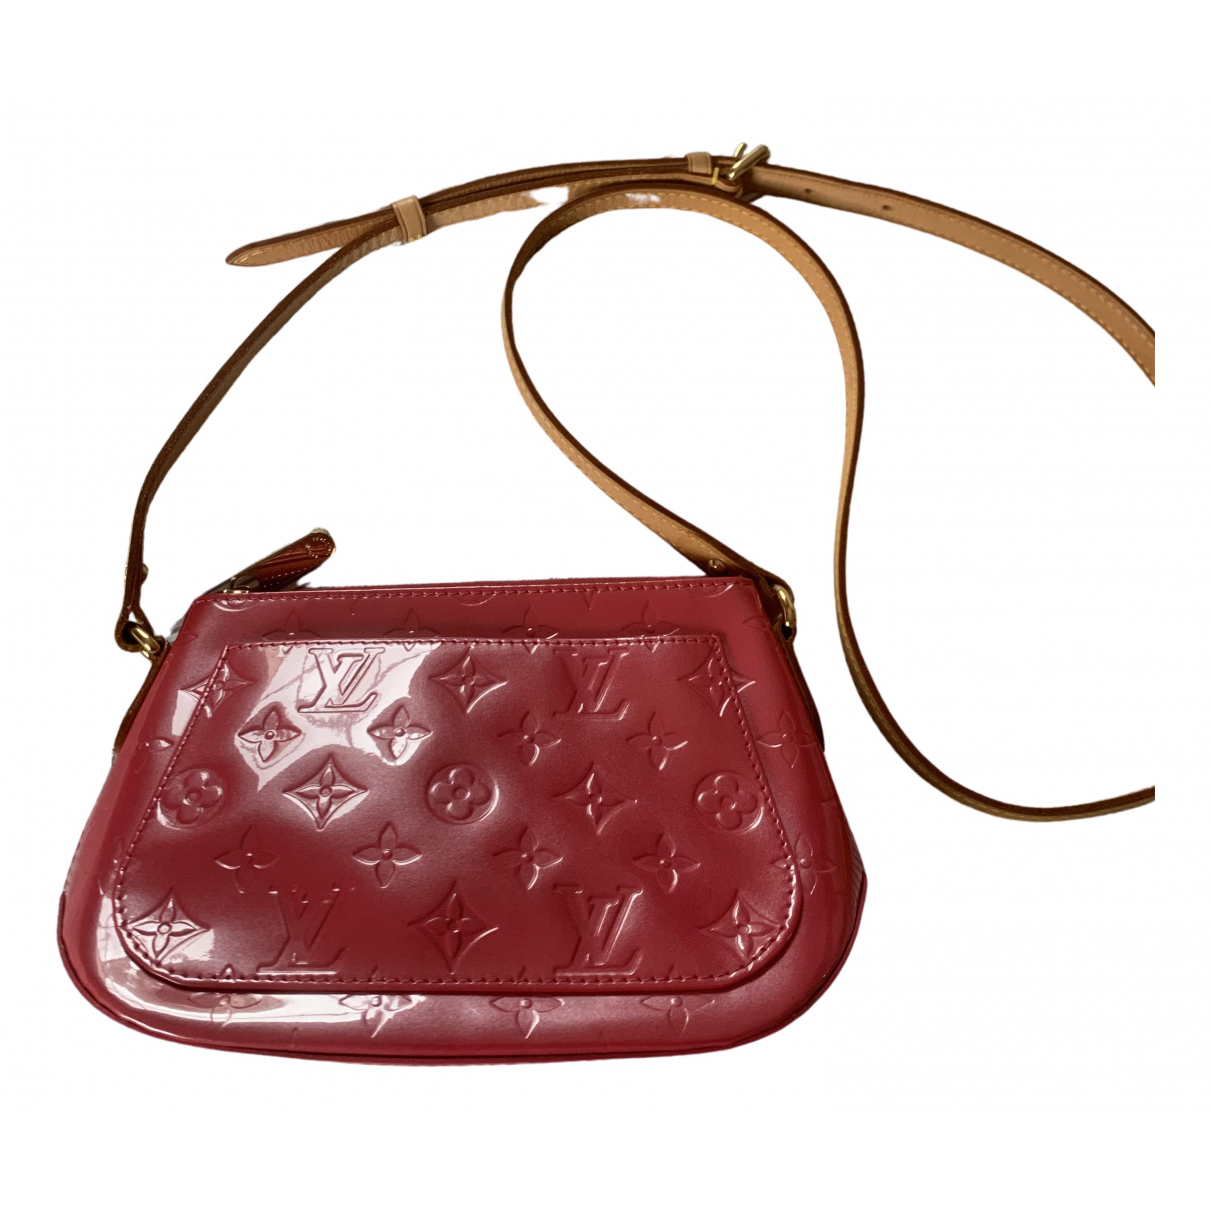 Louis Vuitton N Pink Patent leather Clutch bag for Women N